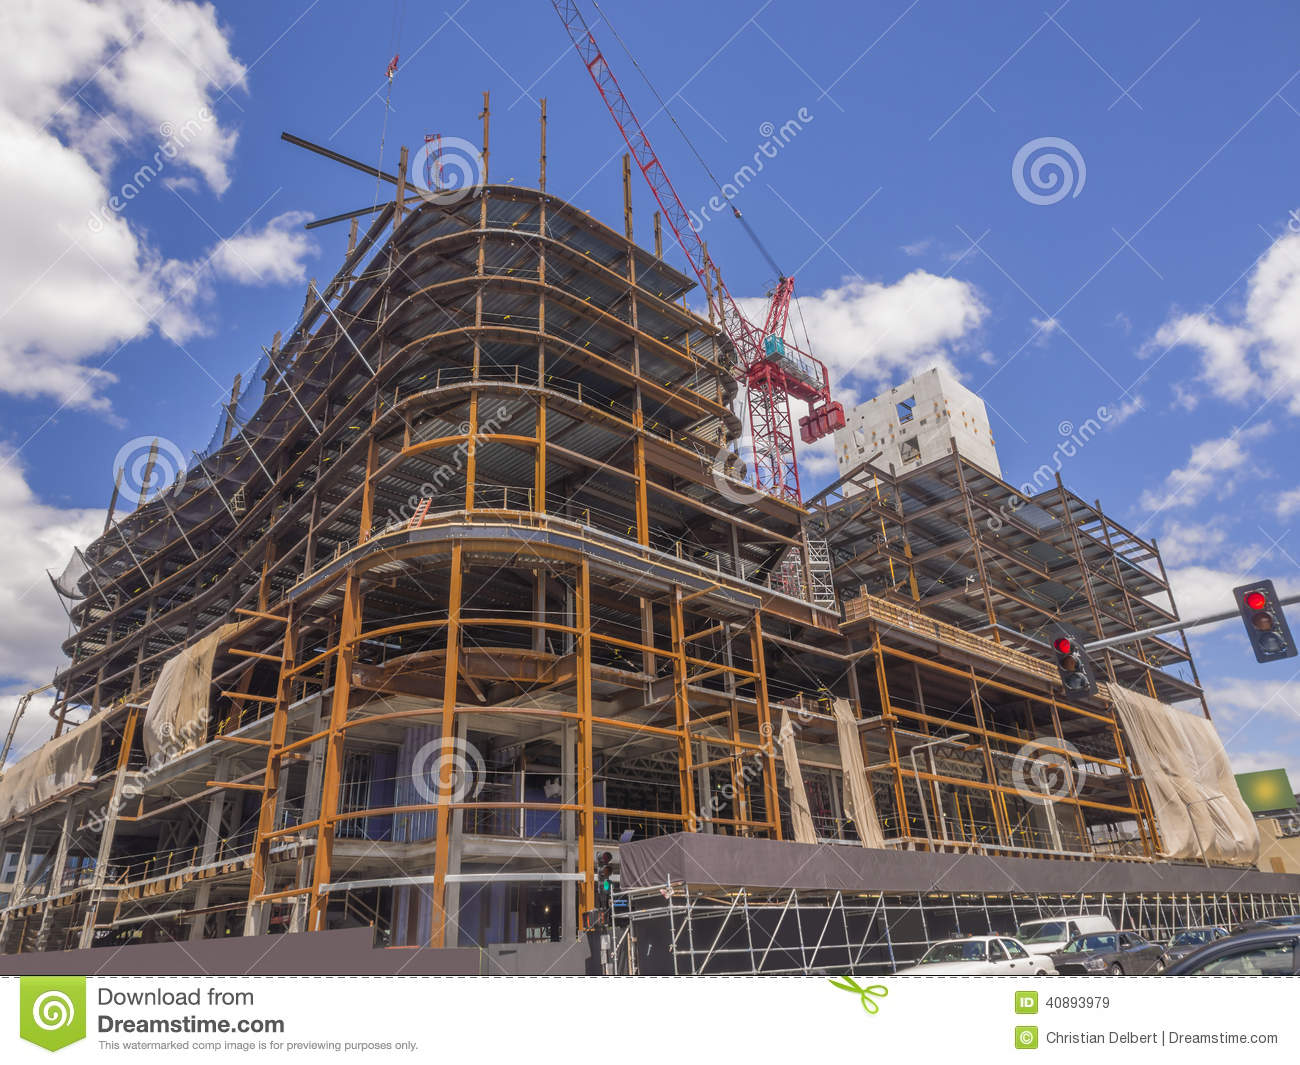 New Commercial Building Going Up Stock Photo - Image: 40893979